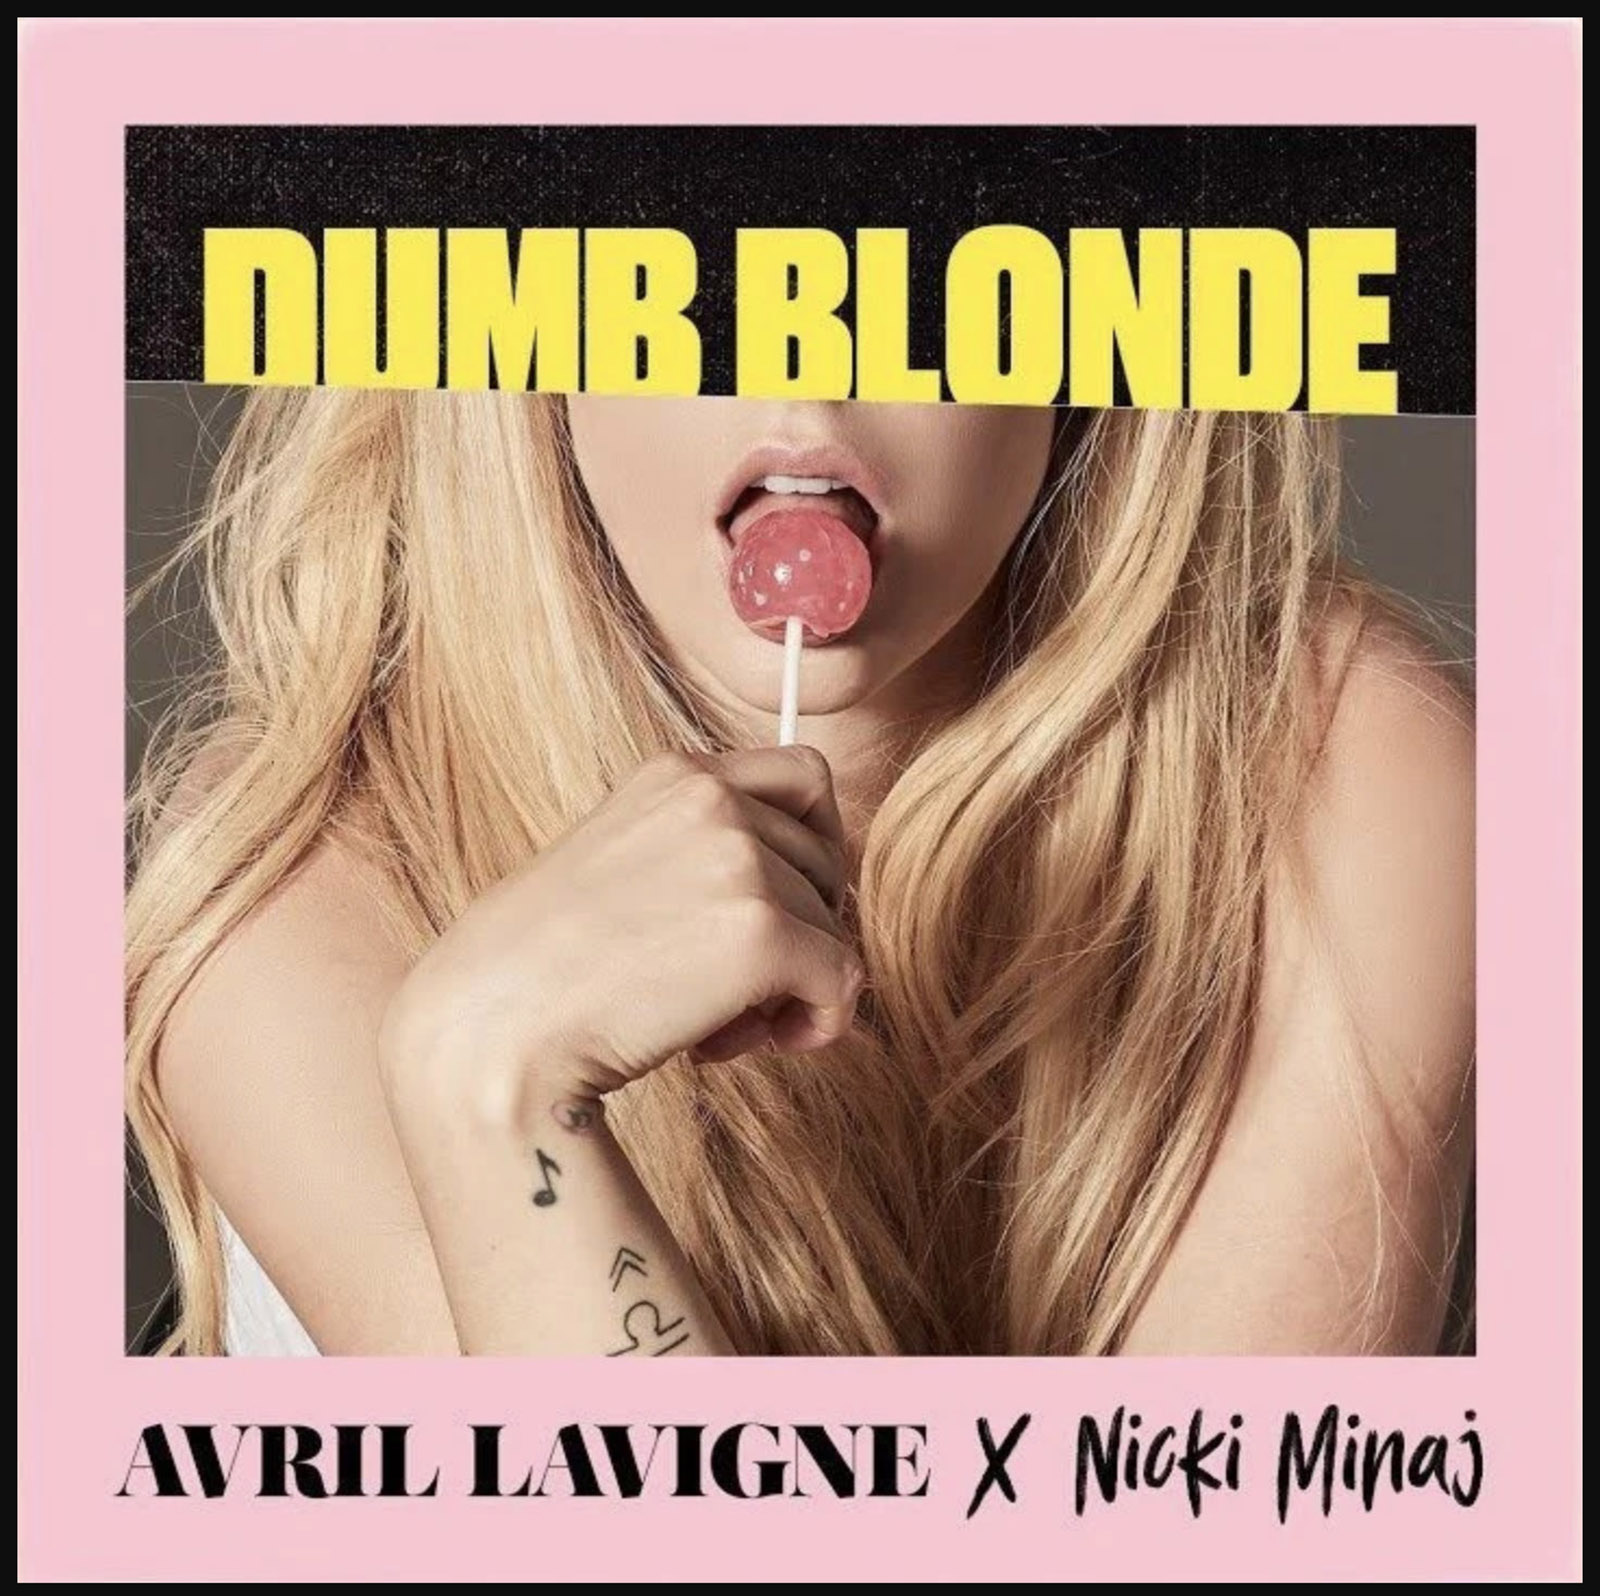 DUMB BLONDE AVRIL LAVIGNE 2019